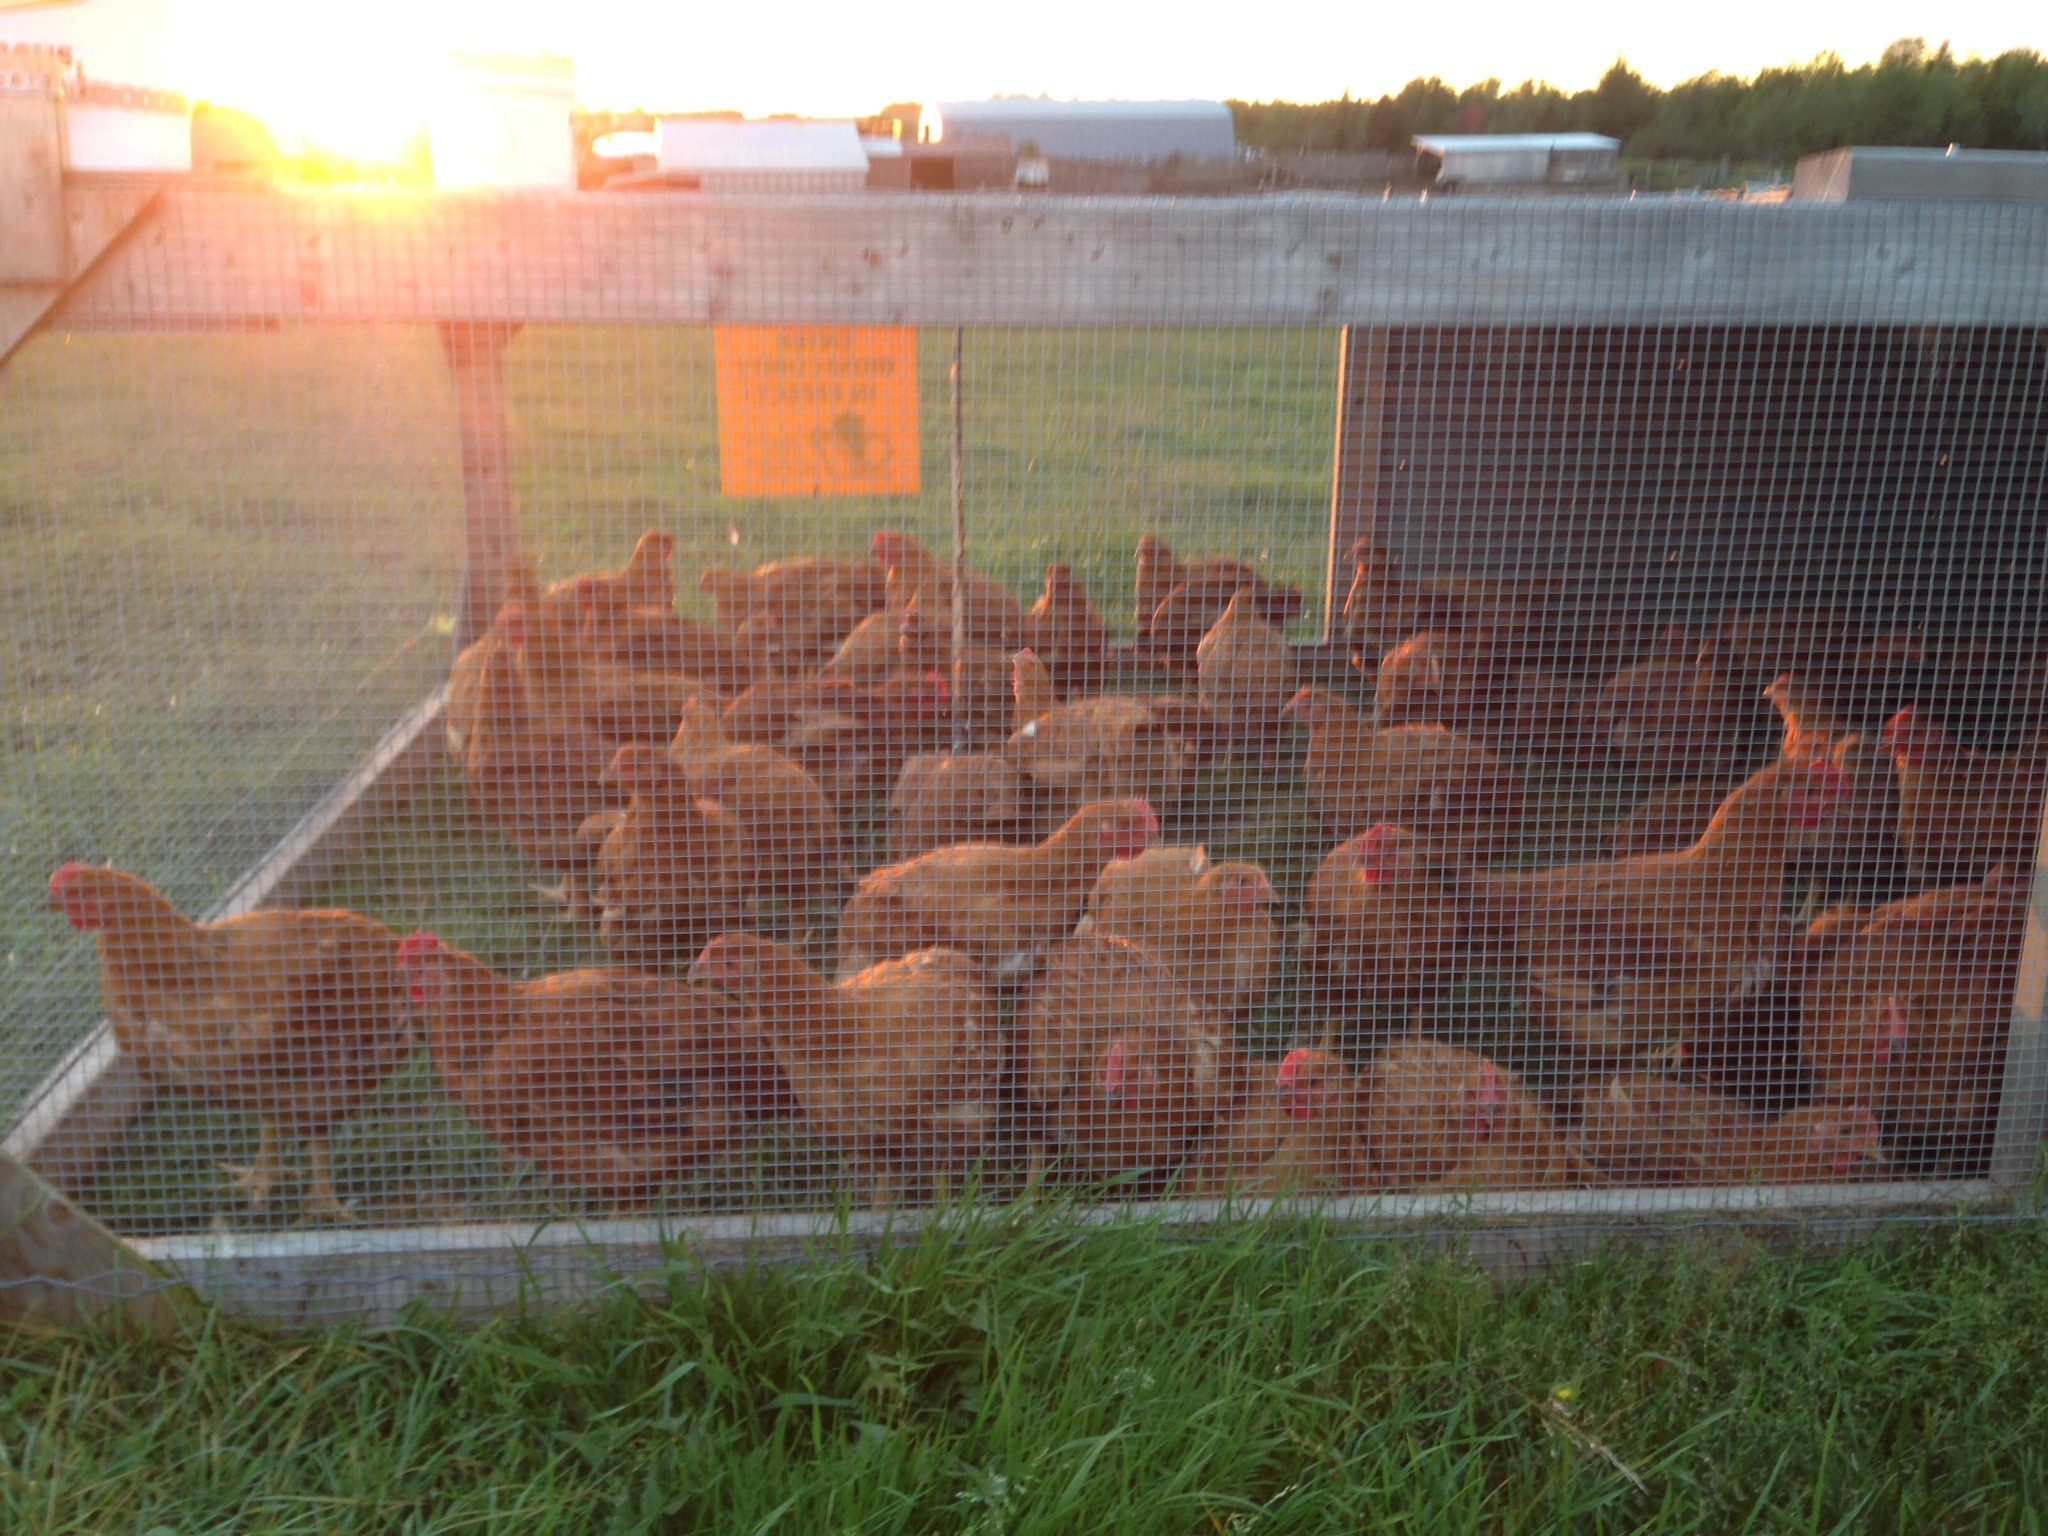 These are nova brown chickens in the portable shelters